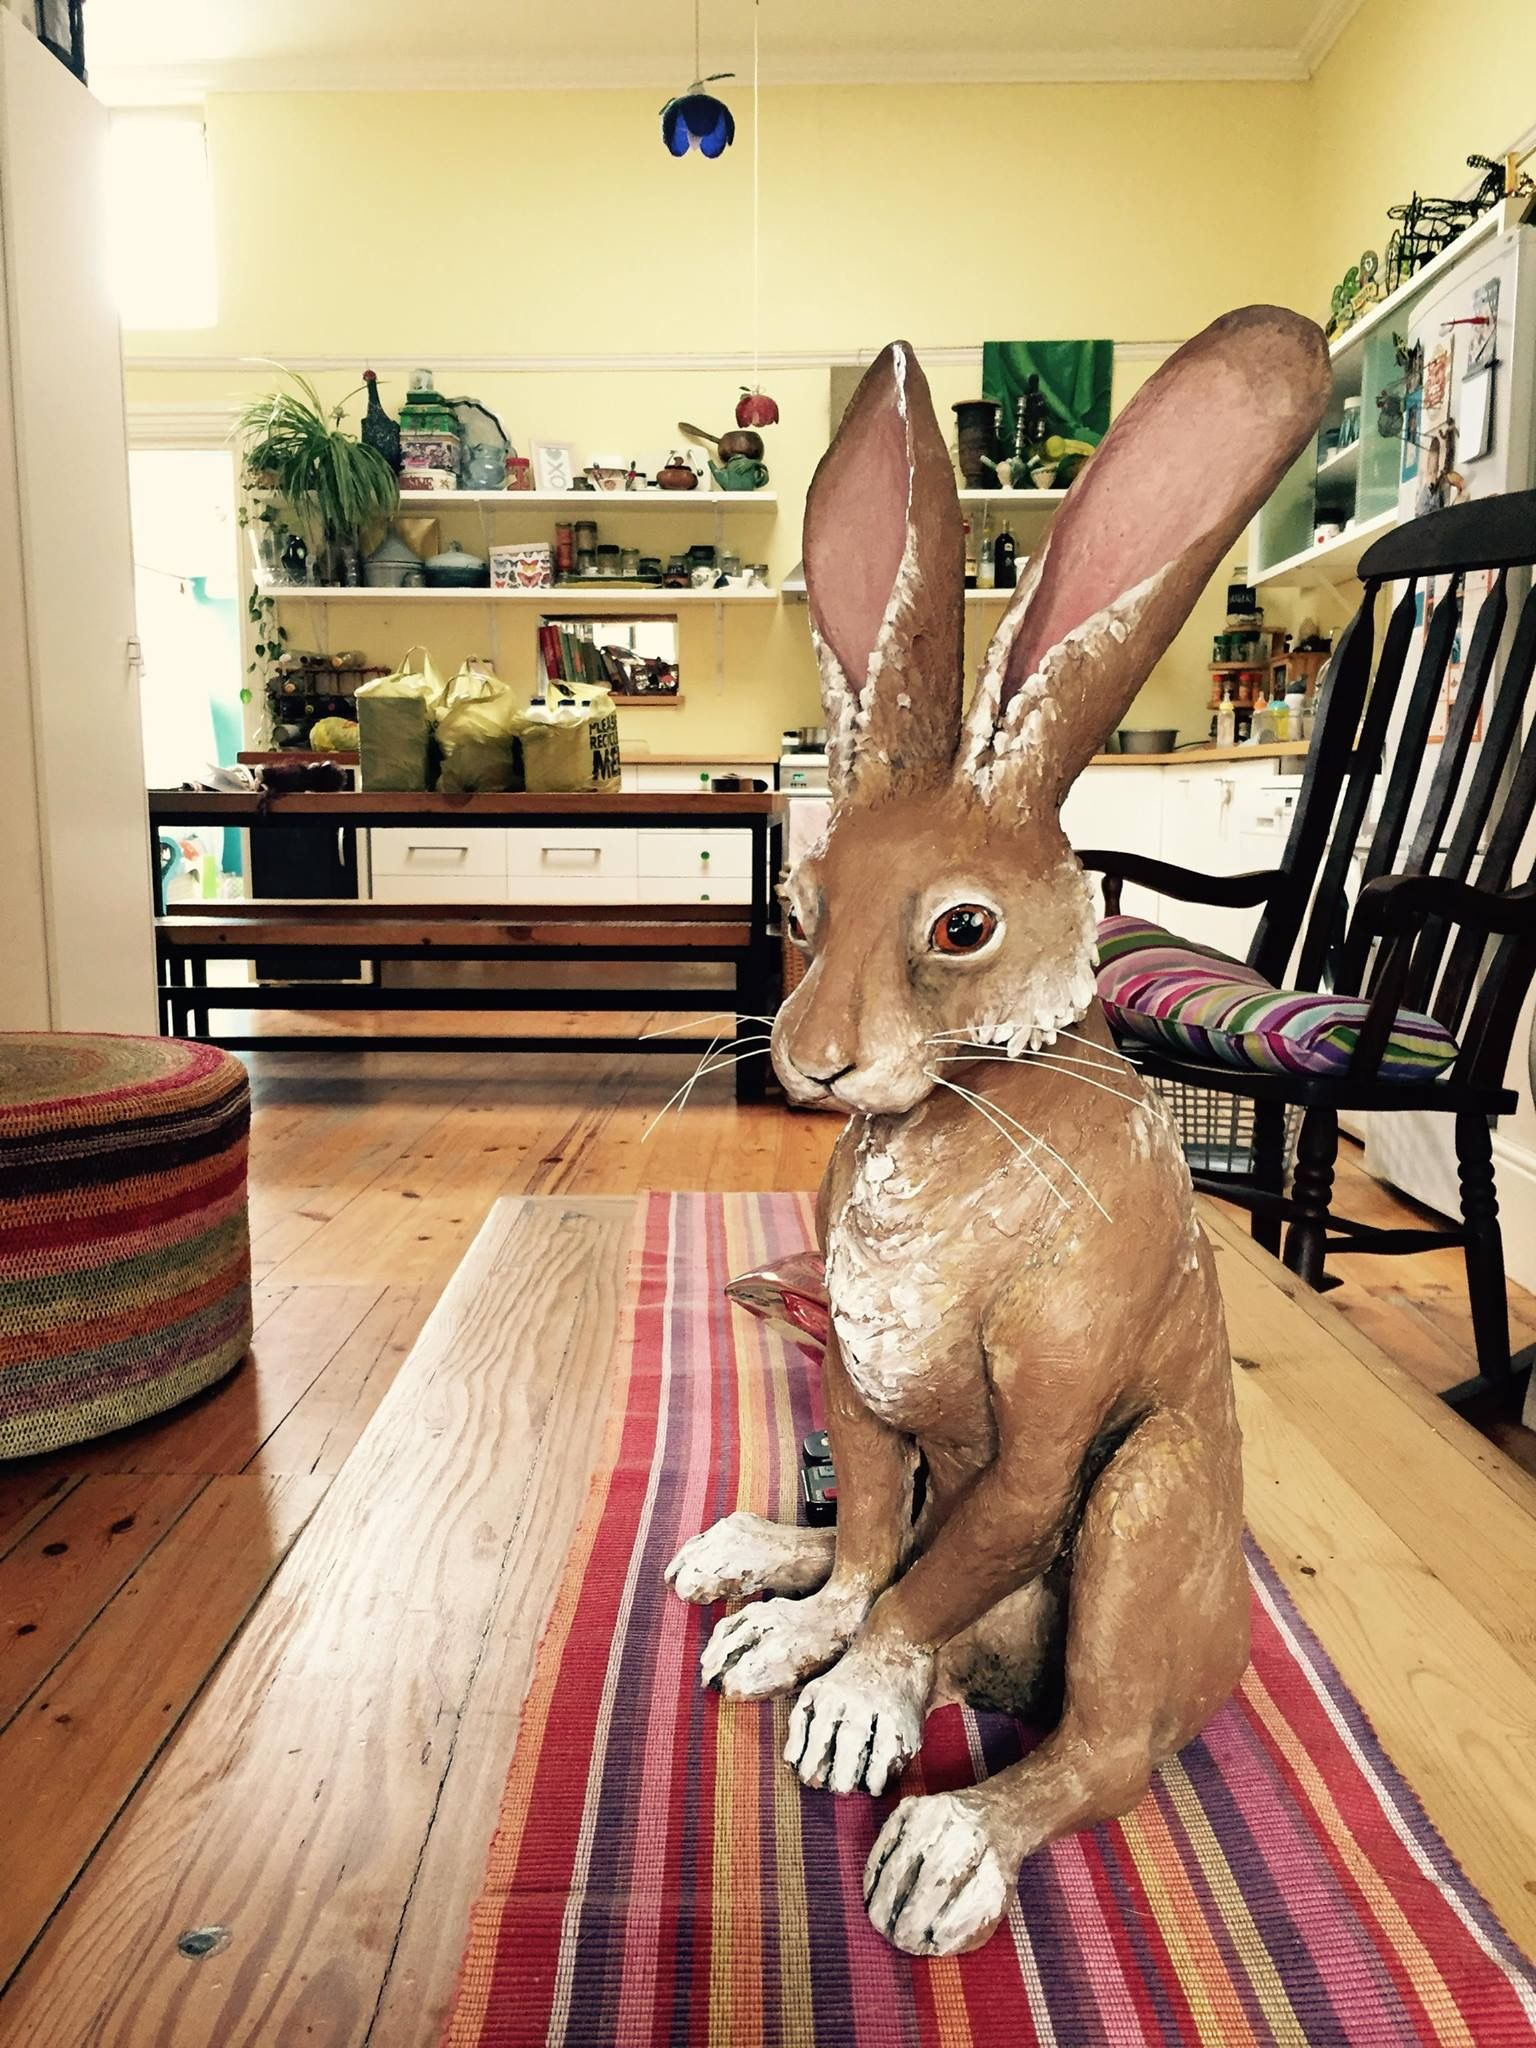 The Amazing Anne Marie Rosenstein New Ceramic Hare April 2015